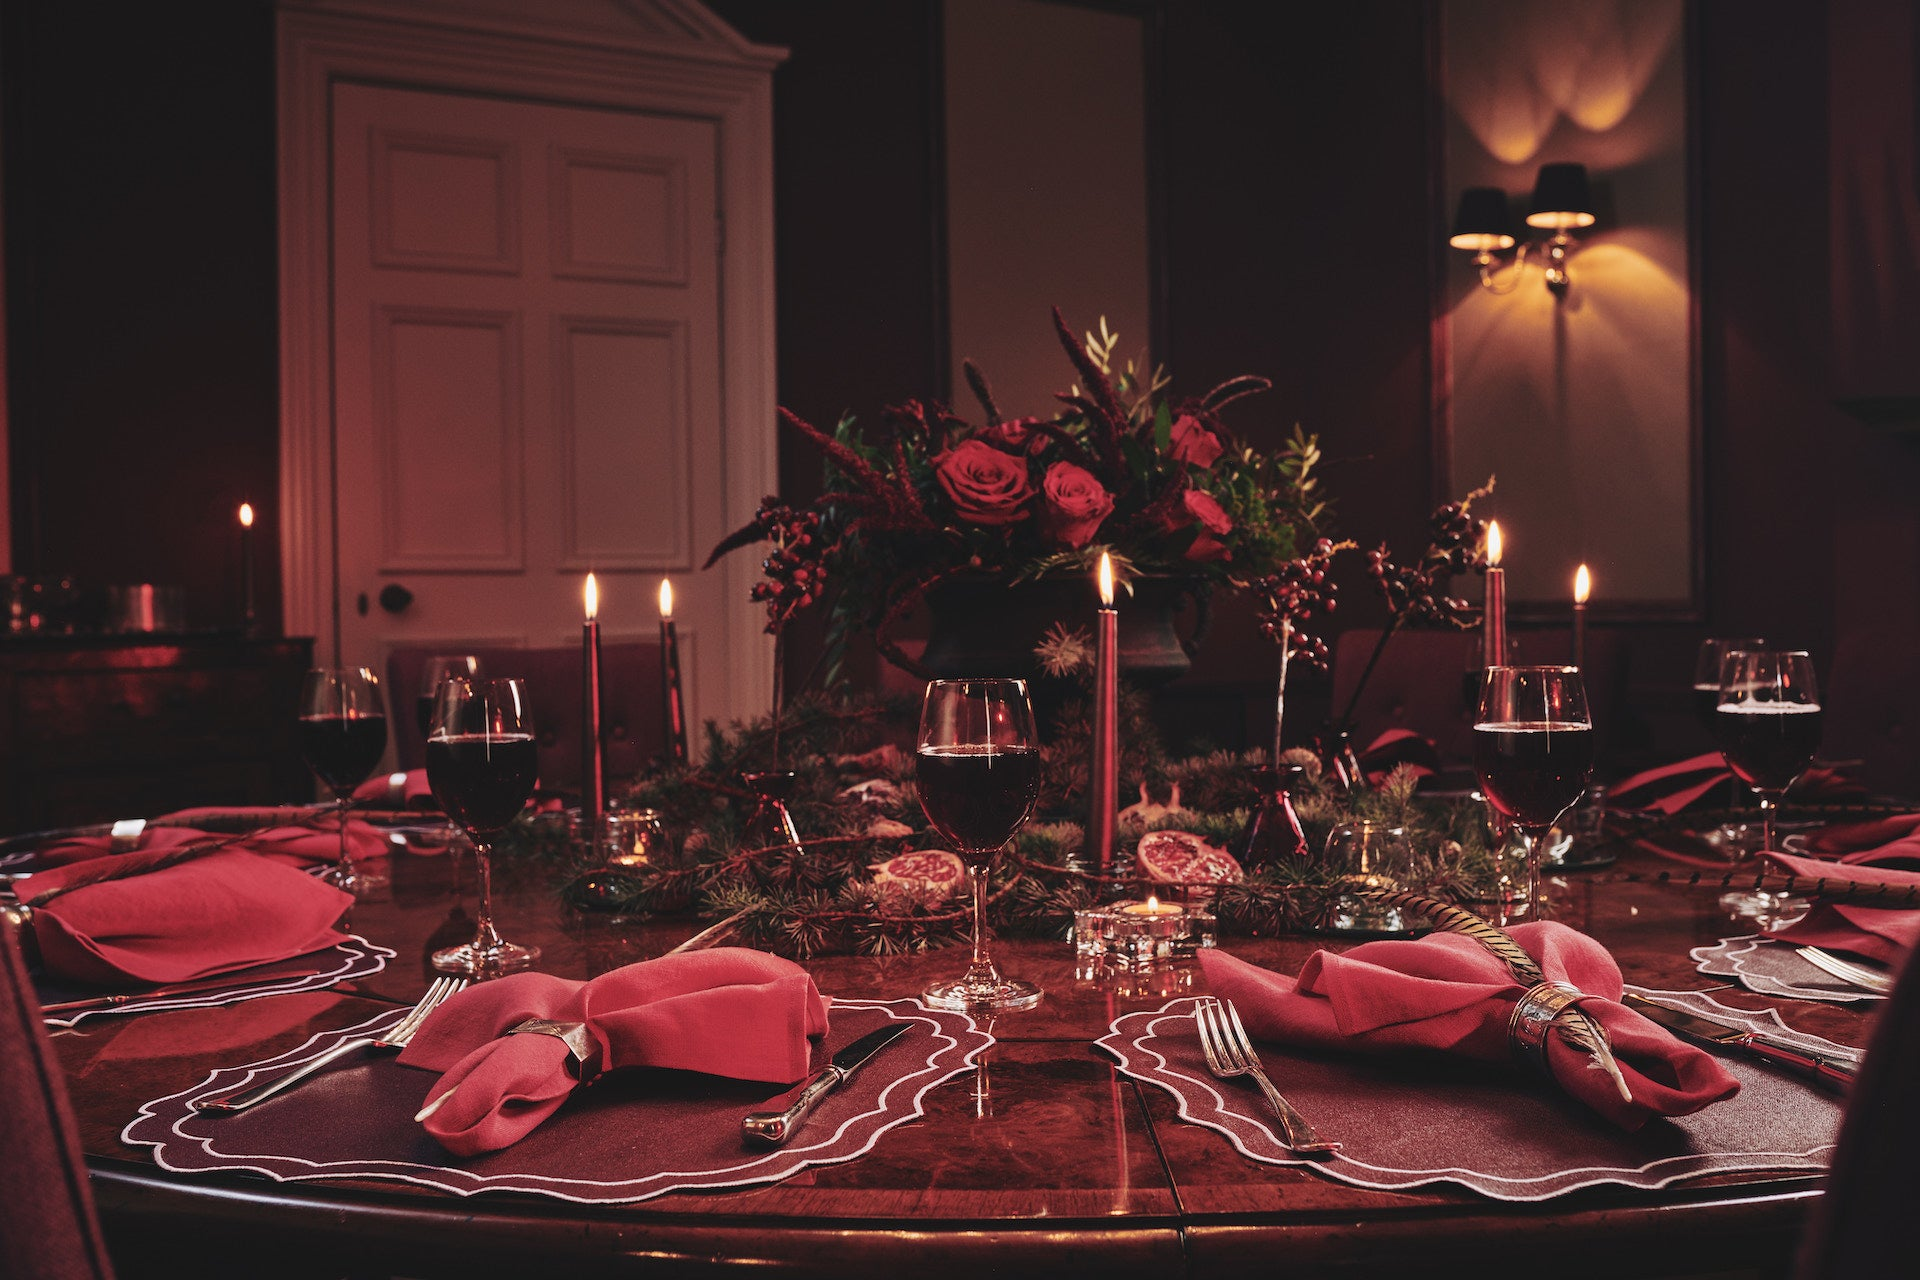 Christmas tablescapes setting red pink burgundy bronze stylish inspiration festive